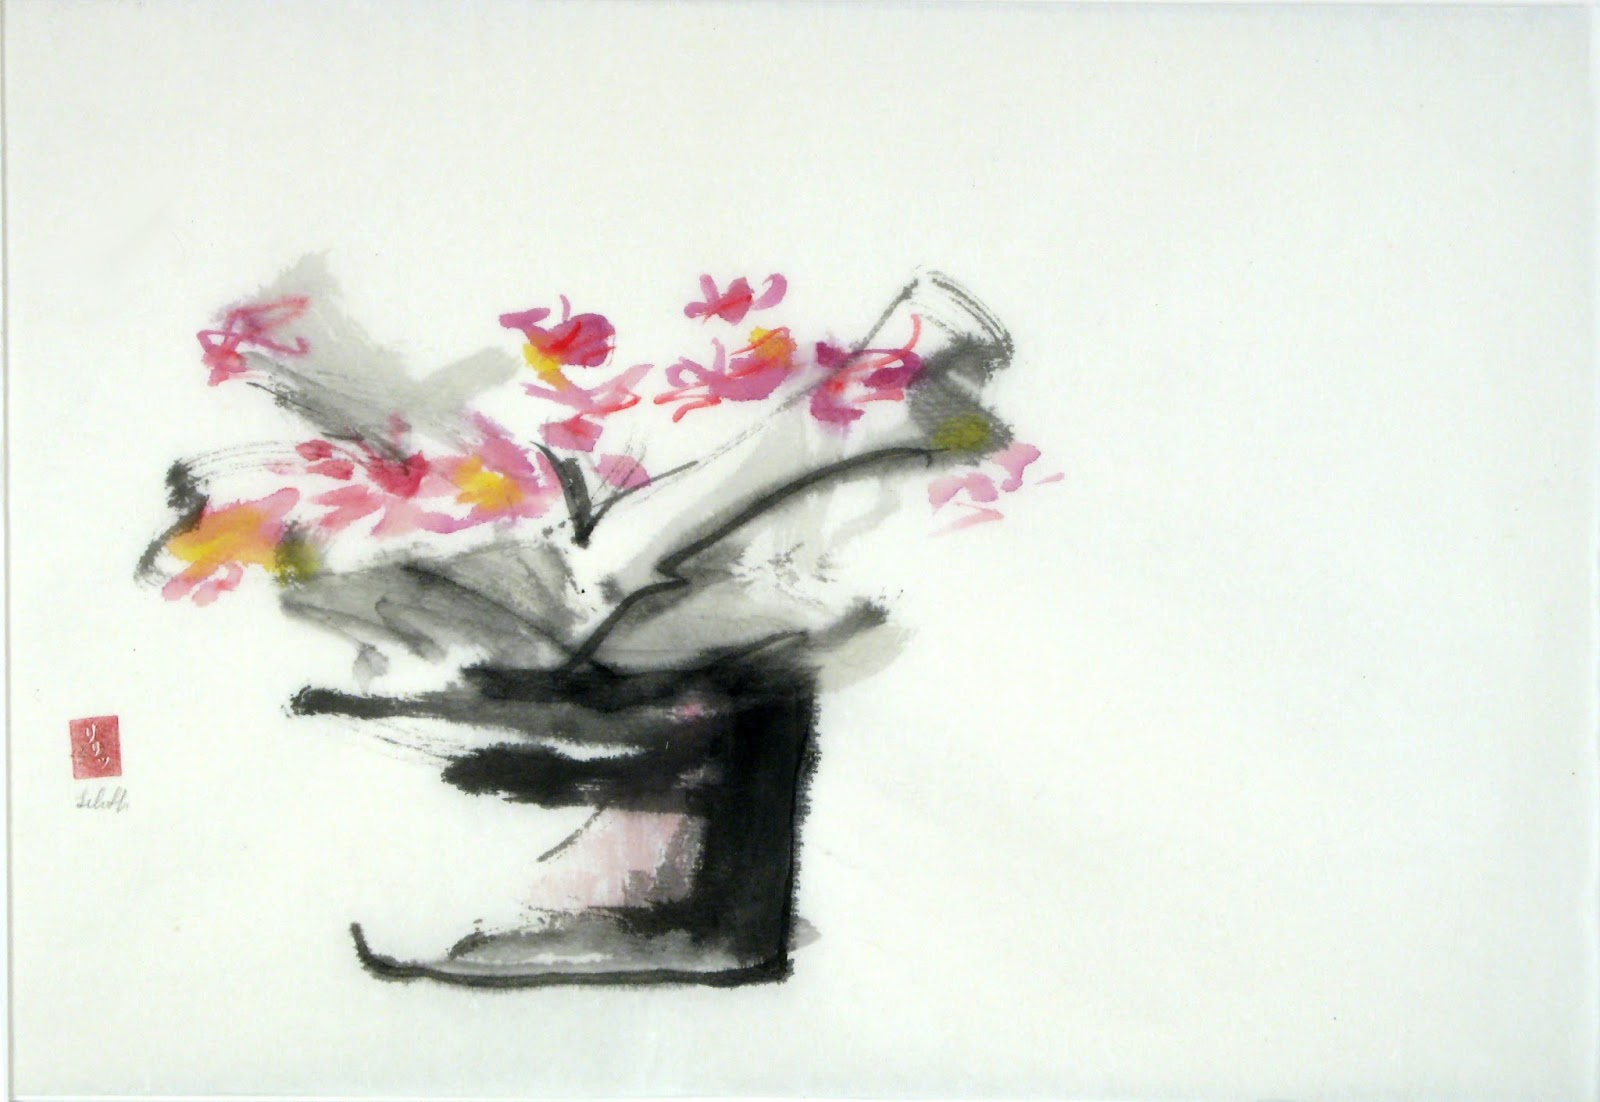 "Flow Like Water ""Tao Te Ching"" verse 8 for Artists illustration of sumi-e bouquet painting."